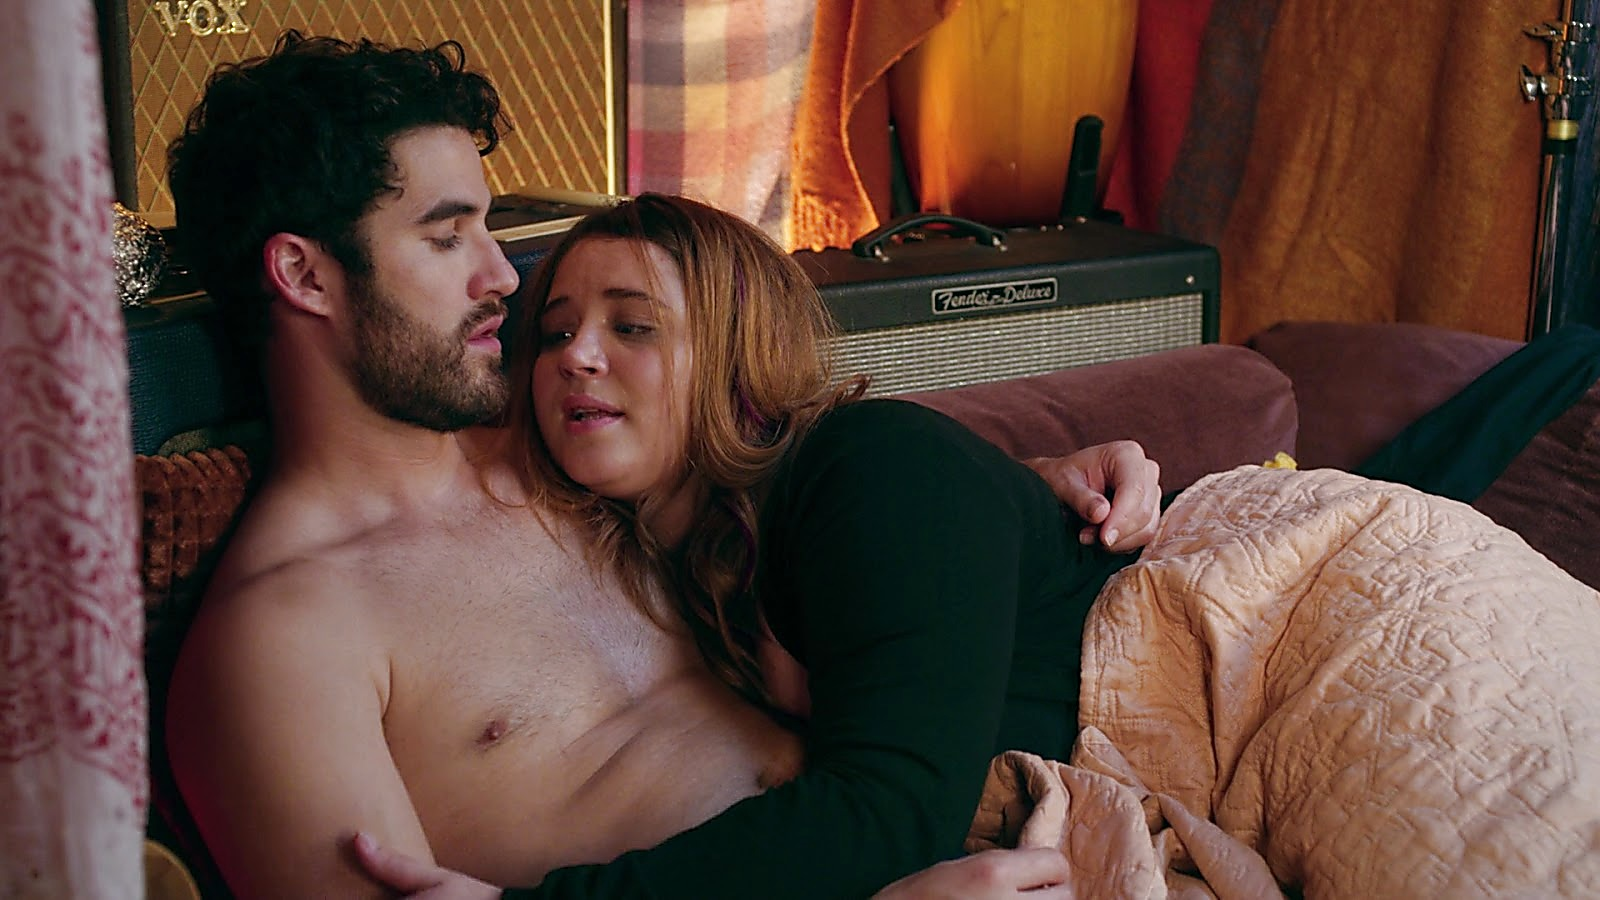 Darren Criss sexy shirtless scene August 17, 2020, 12pm